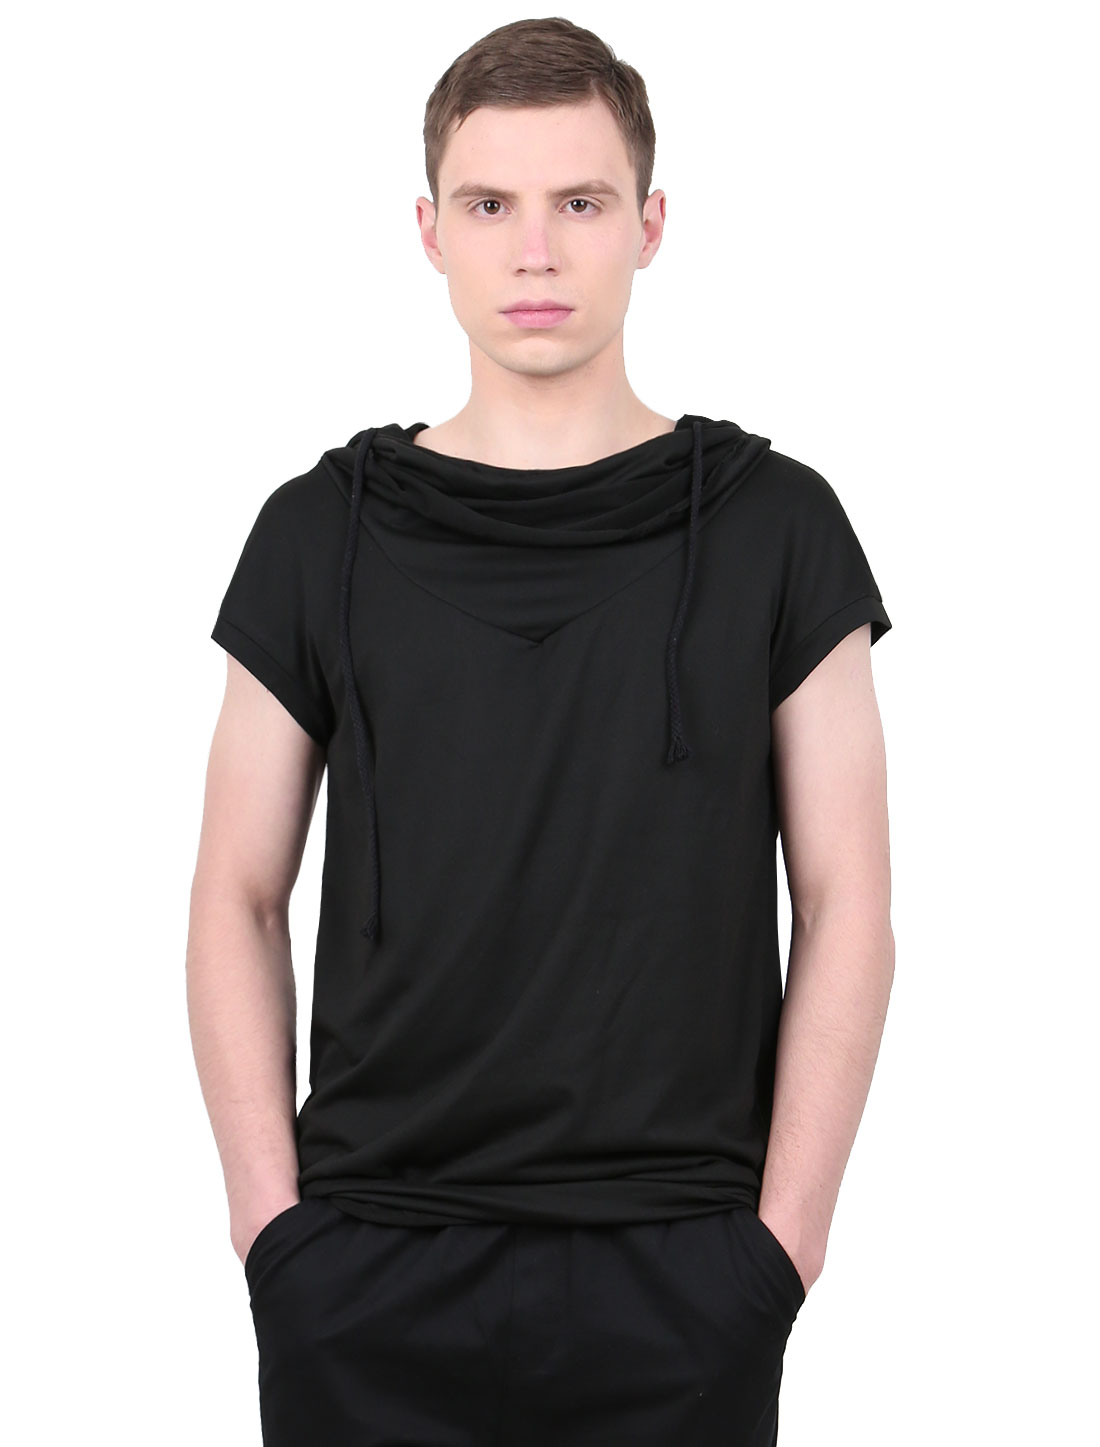 Mens Stylish Black Short Sleeve Cowl Neck Leisure Top Shirt L